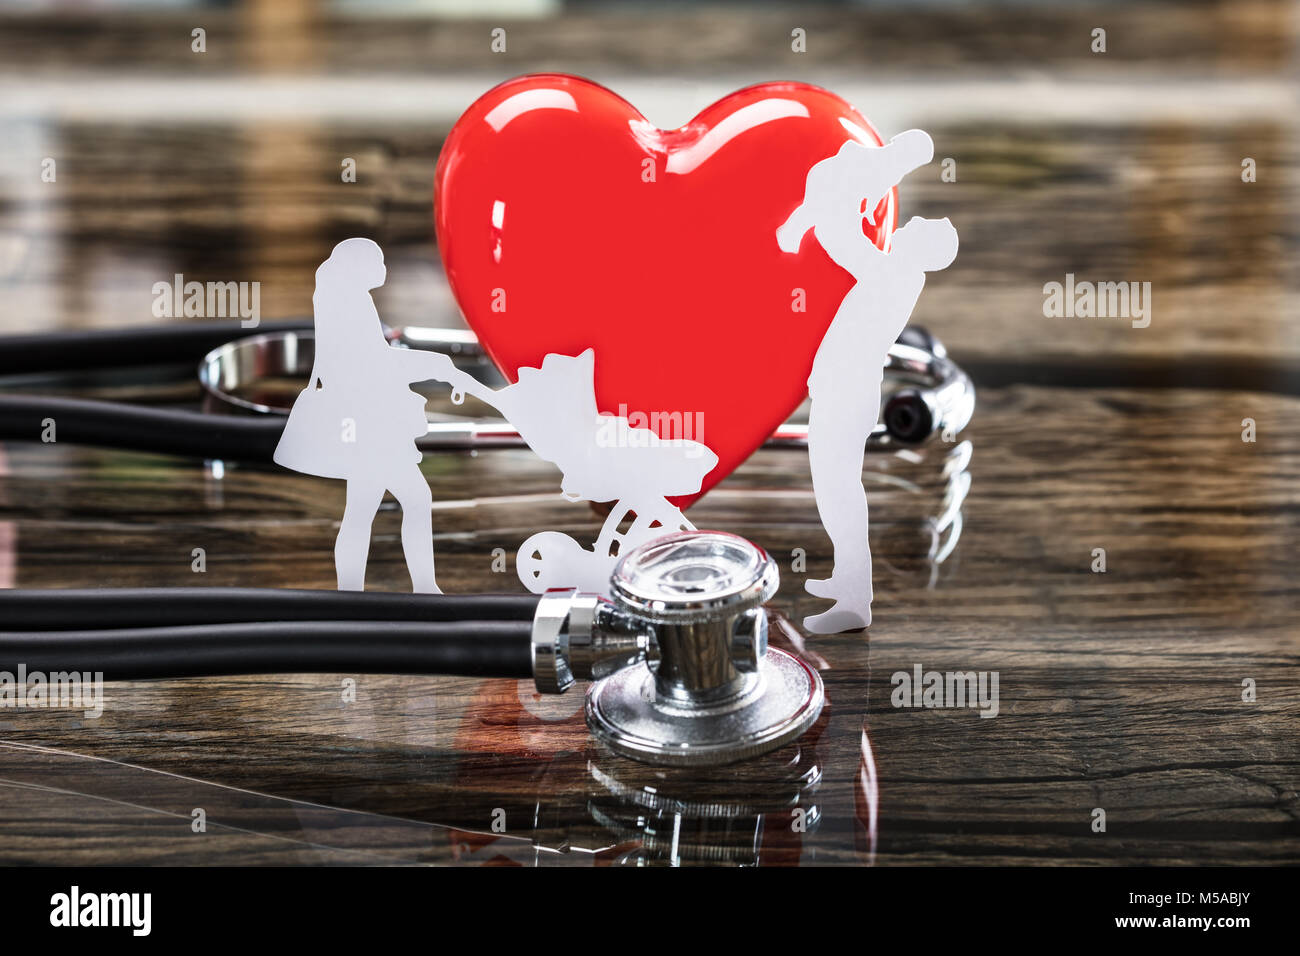 Close-up Of Family Cut Out And Red Heart With Stethoscope On Desk - Stock Image